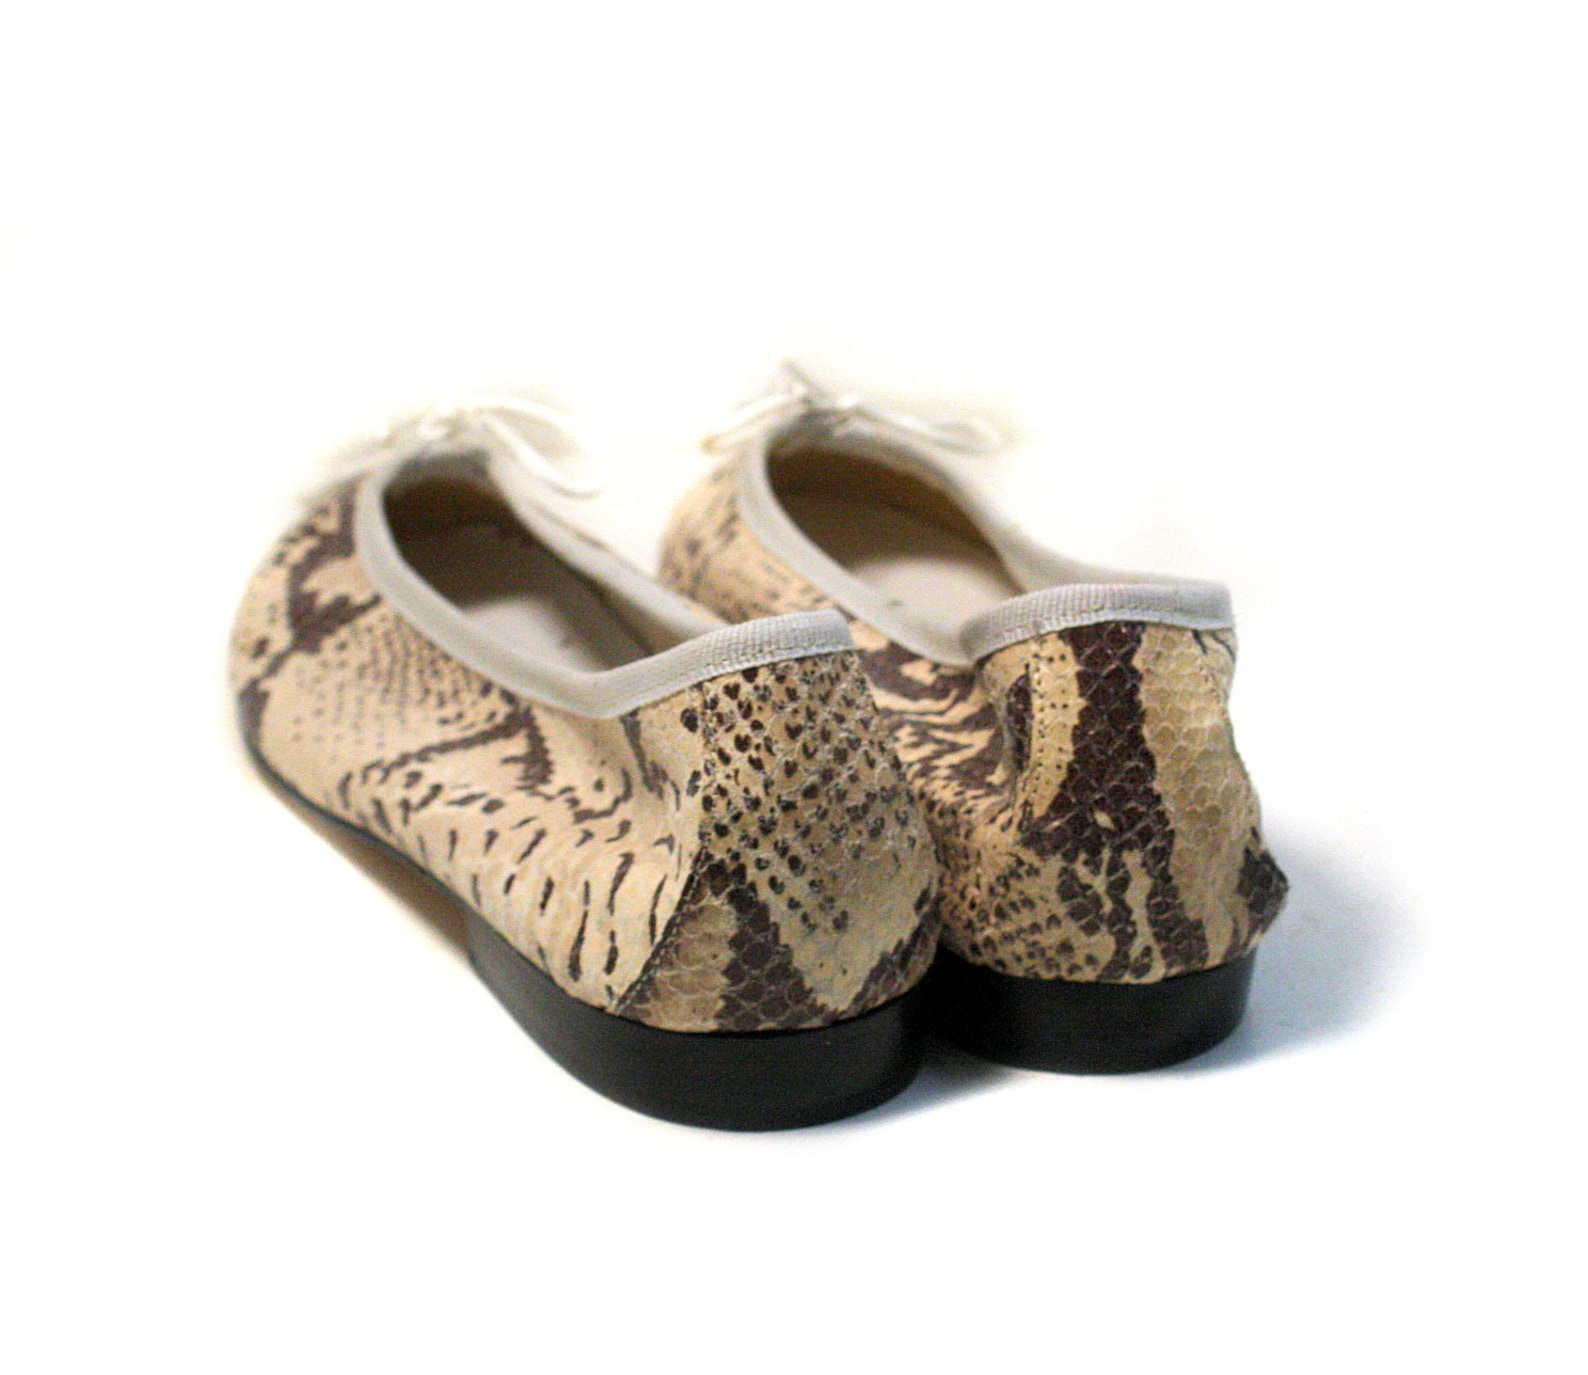 90s snakeskin flats size 10, unworn vintage reptile clifford and wills snake leather tan brown italy ballet slip on shoes